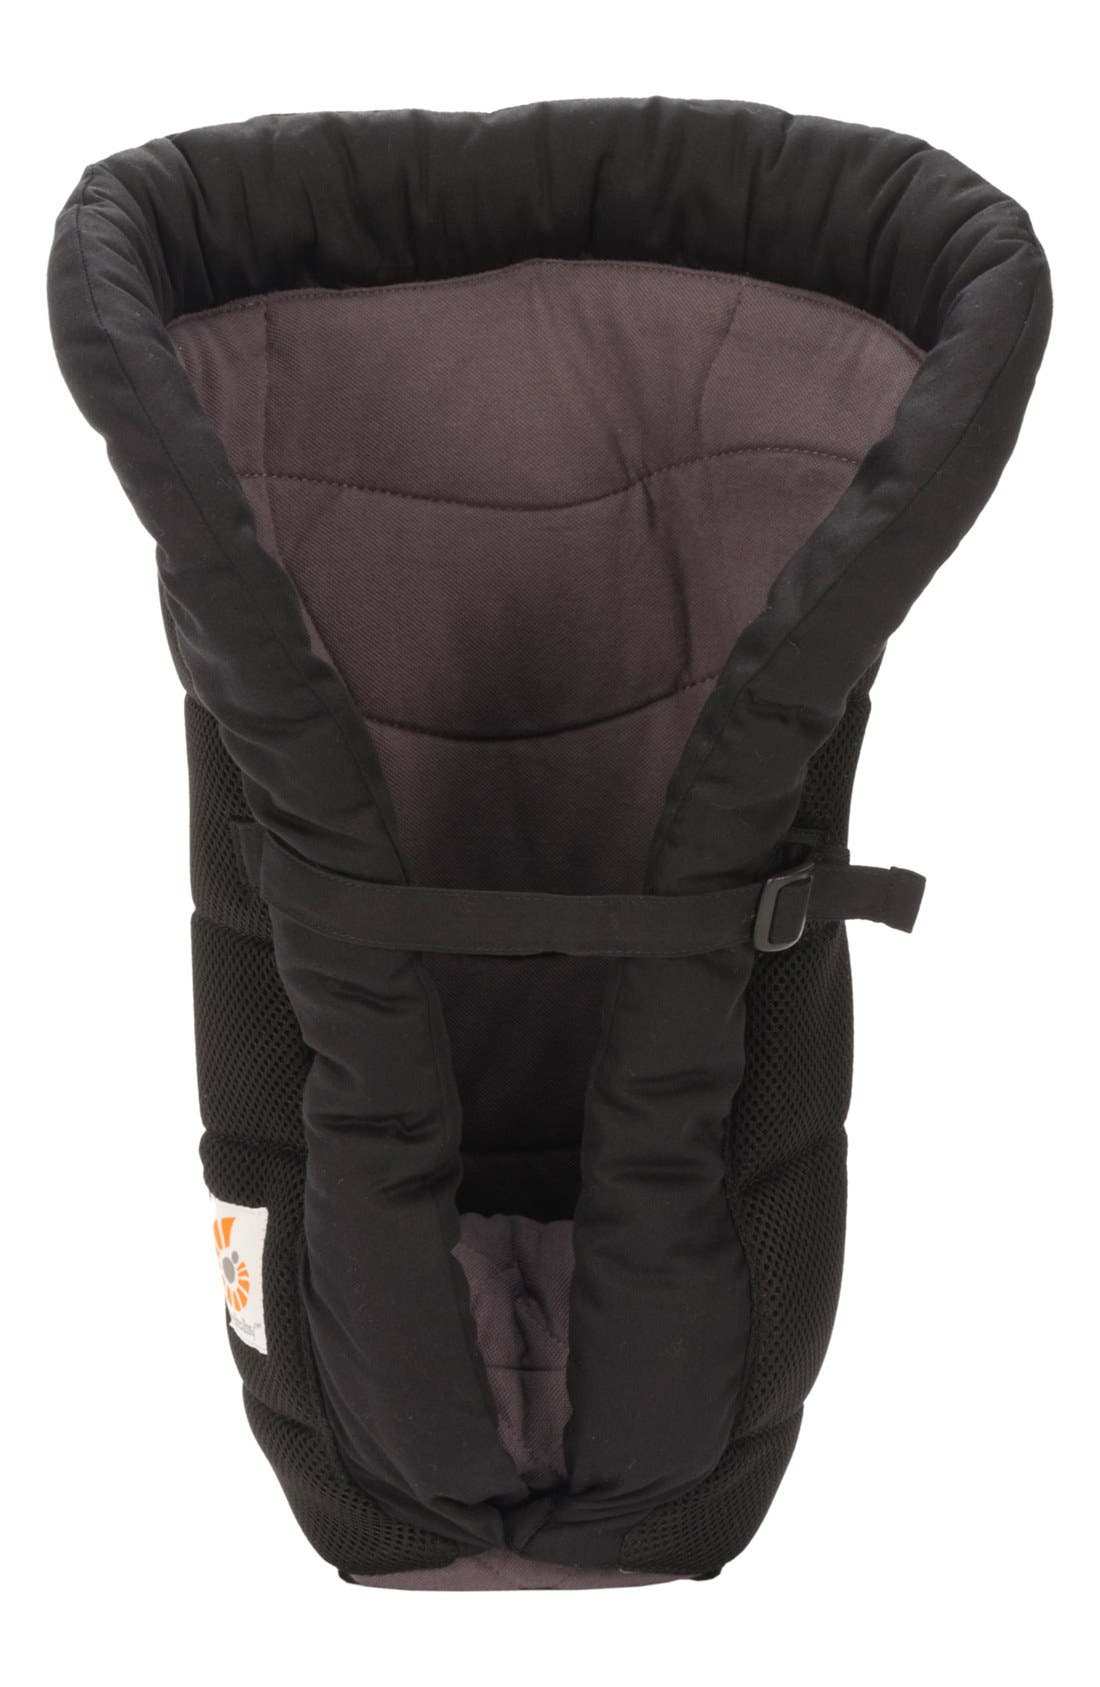 Alternate Image 1 Selected - ERGObaby Carrier Insert